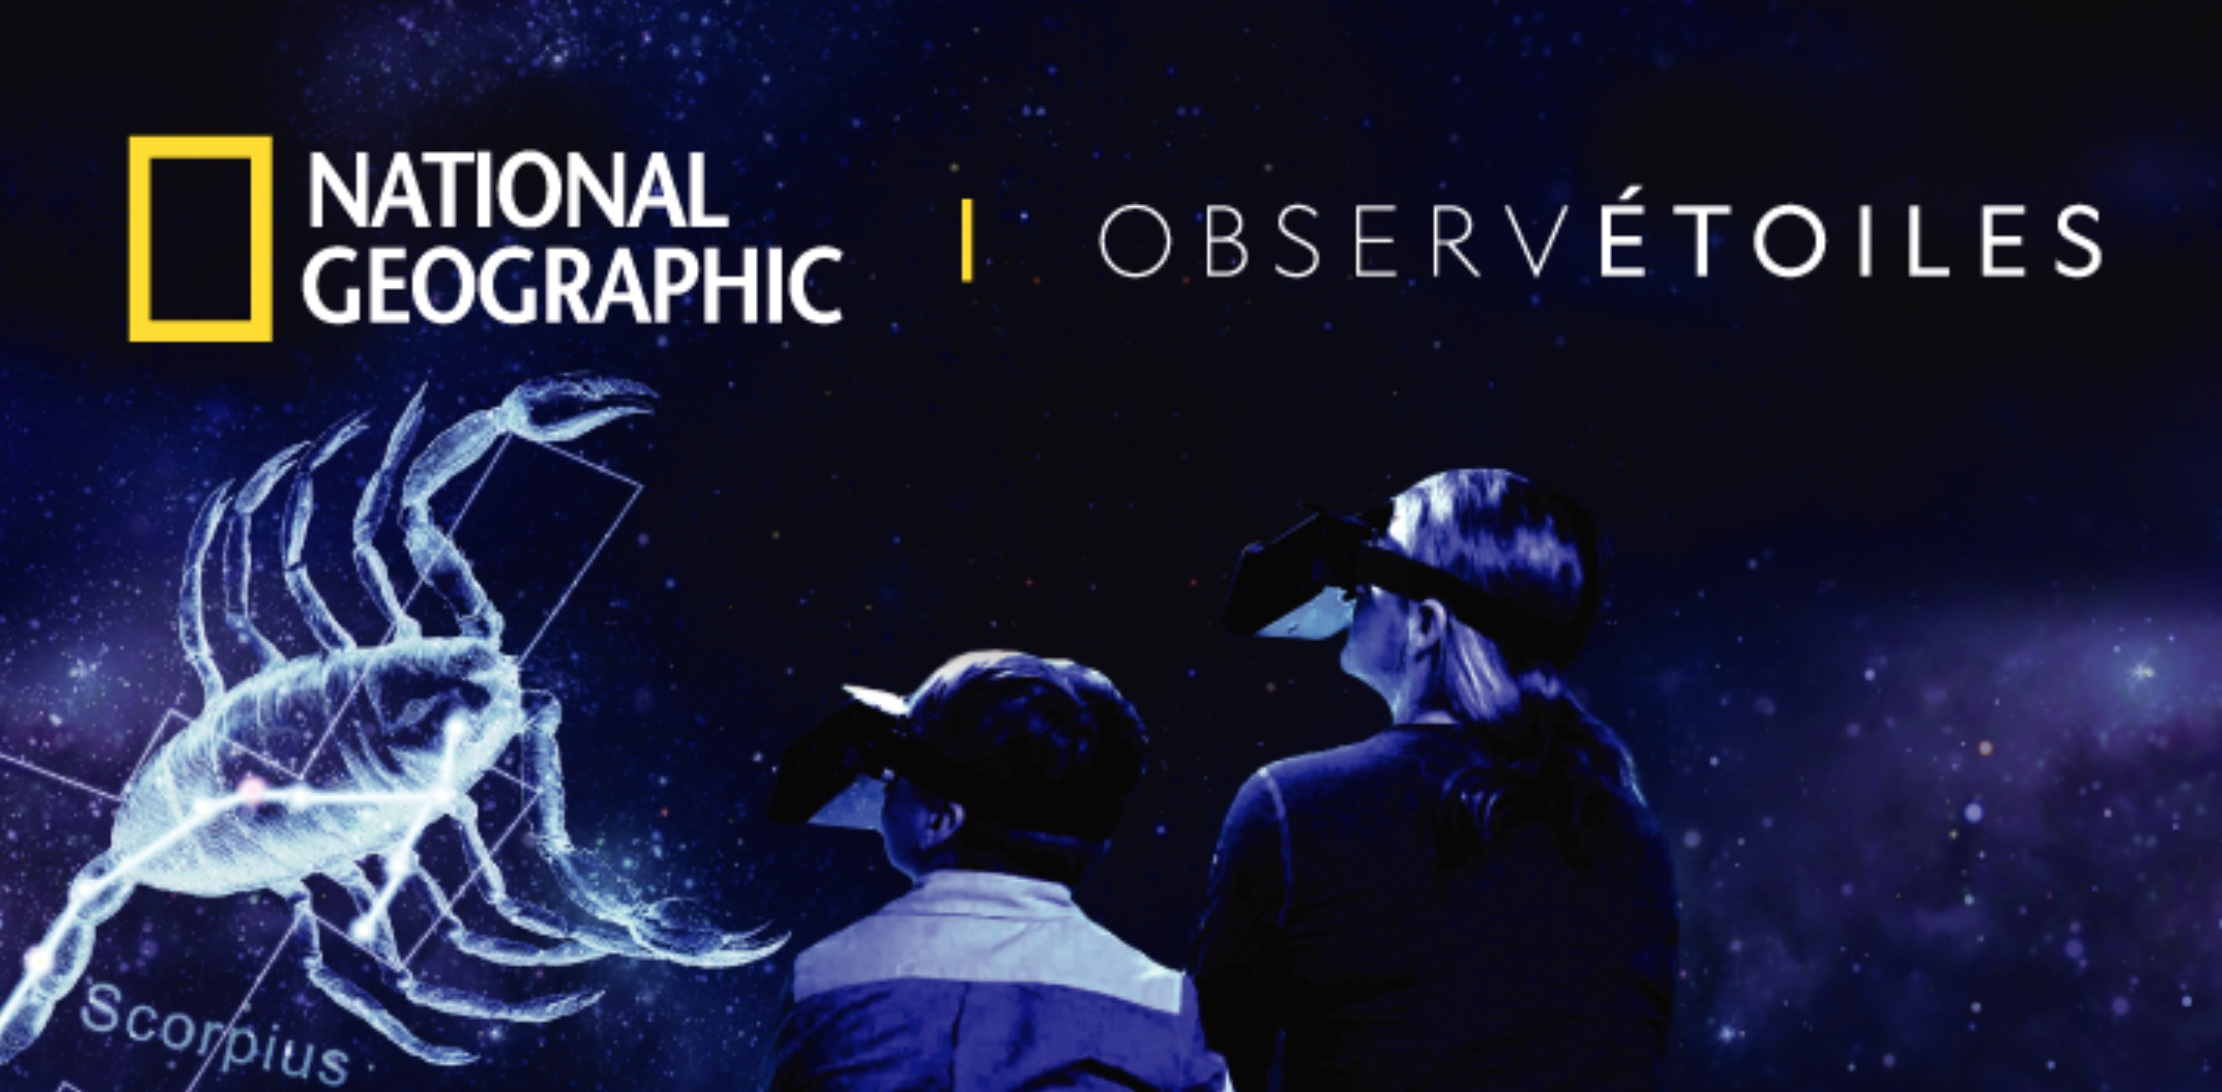 National Geographic OBSERVÉTOILES